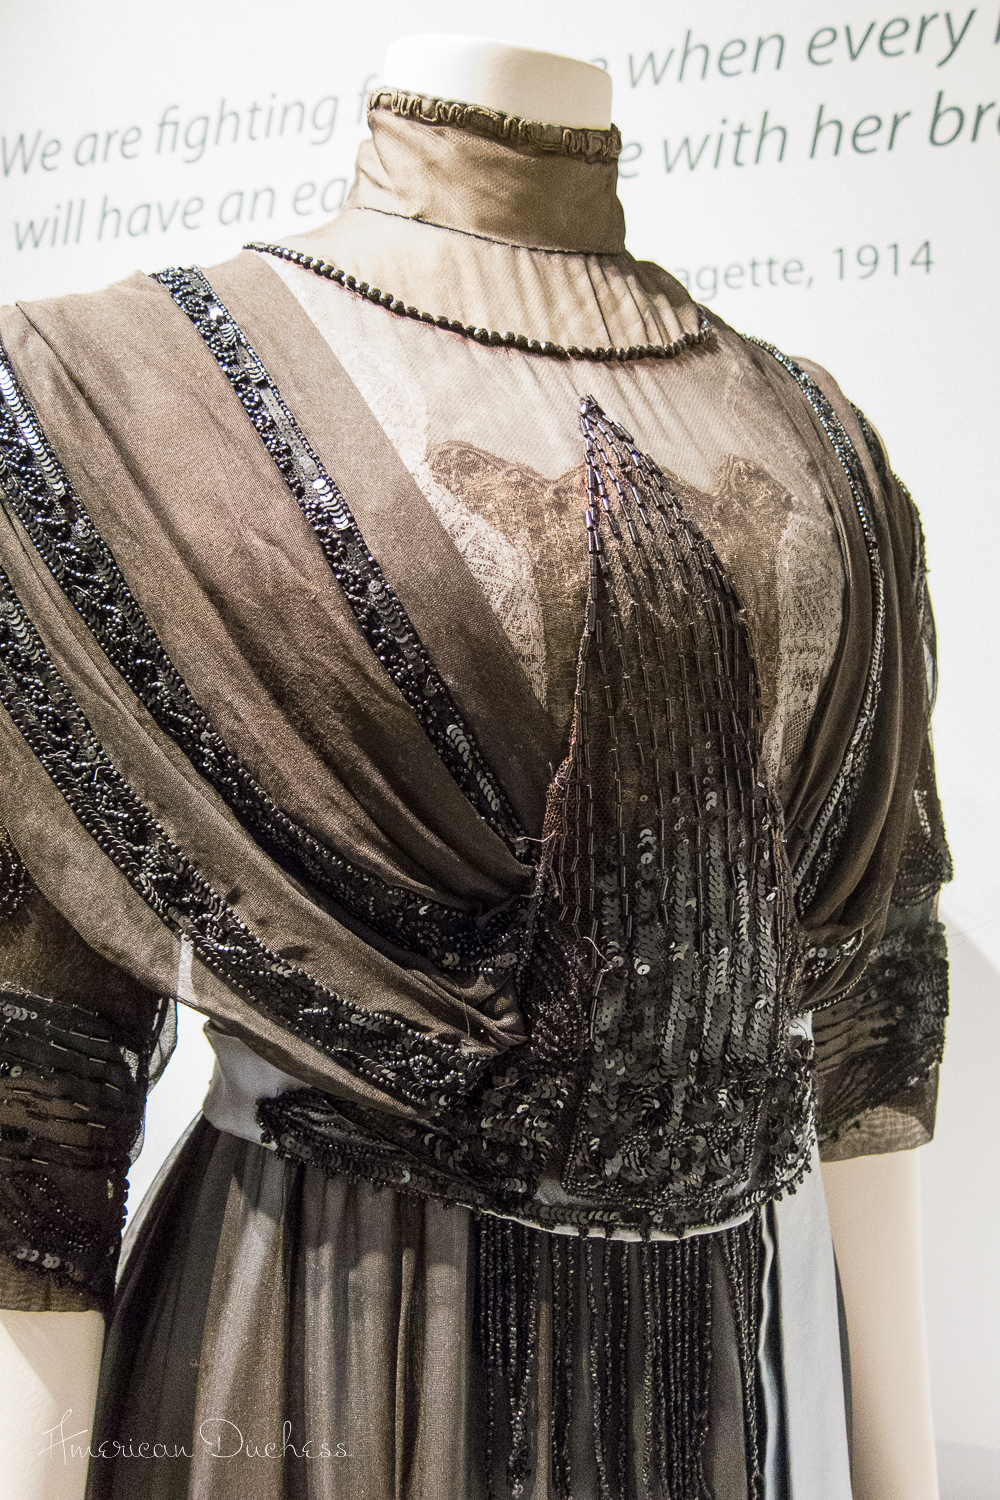 Gown by T & S Bacon, Liverpool, c. 1910-1912. Lady Lever Art Gallery